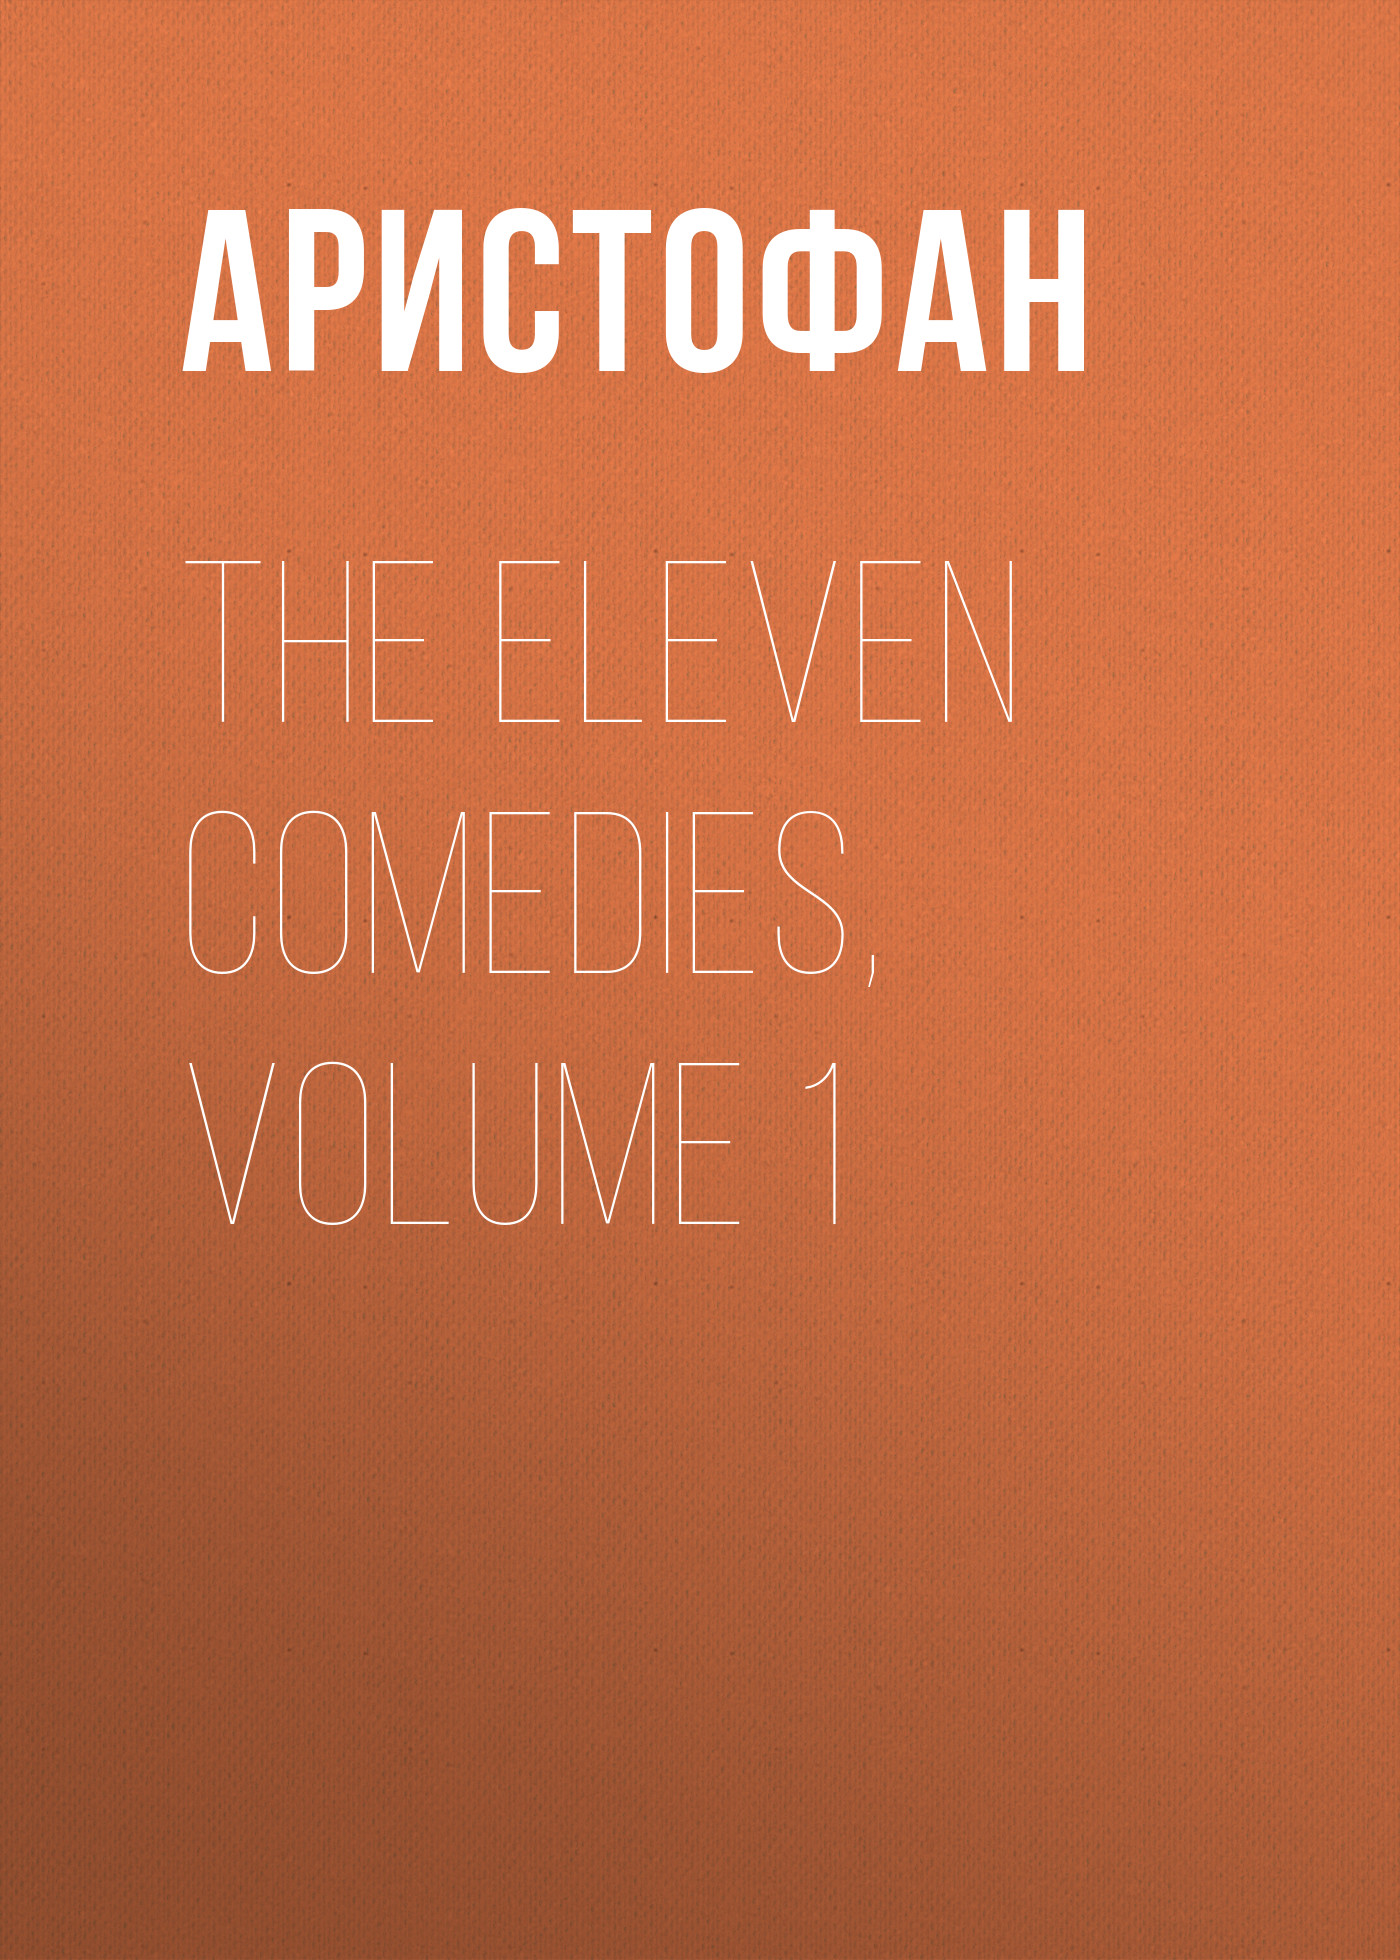 Аристофан The Eleven Comedies, Volume 1 аристофан аристофан комедии в двух томах том 1